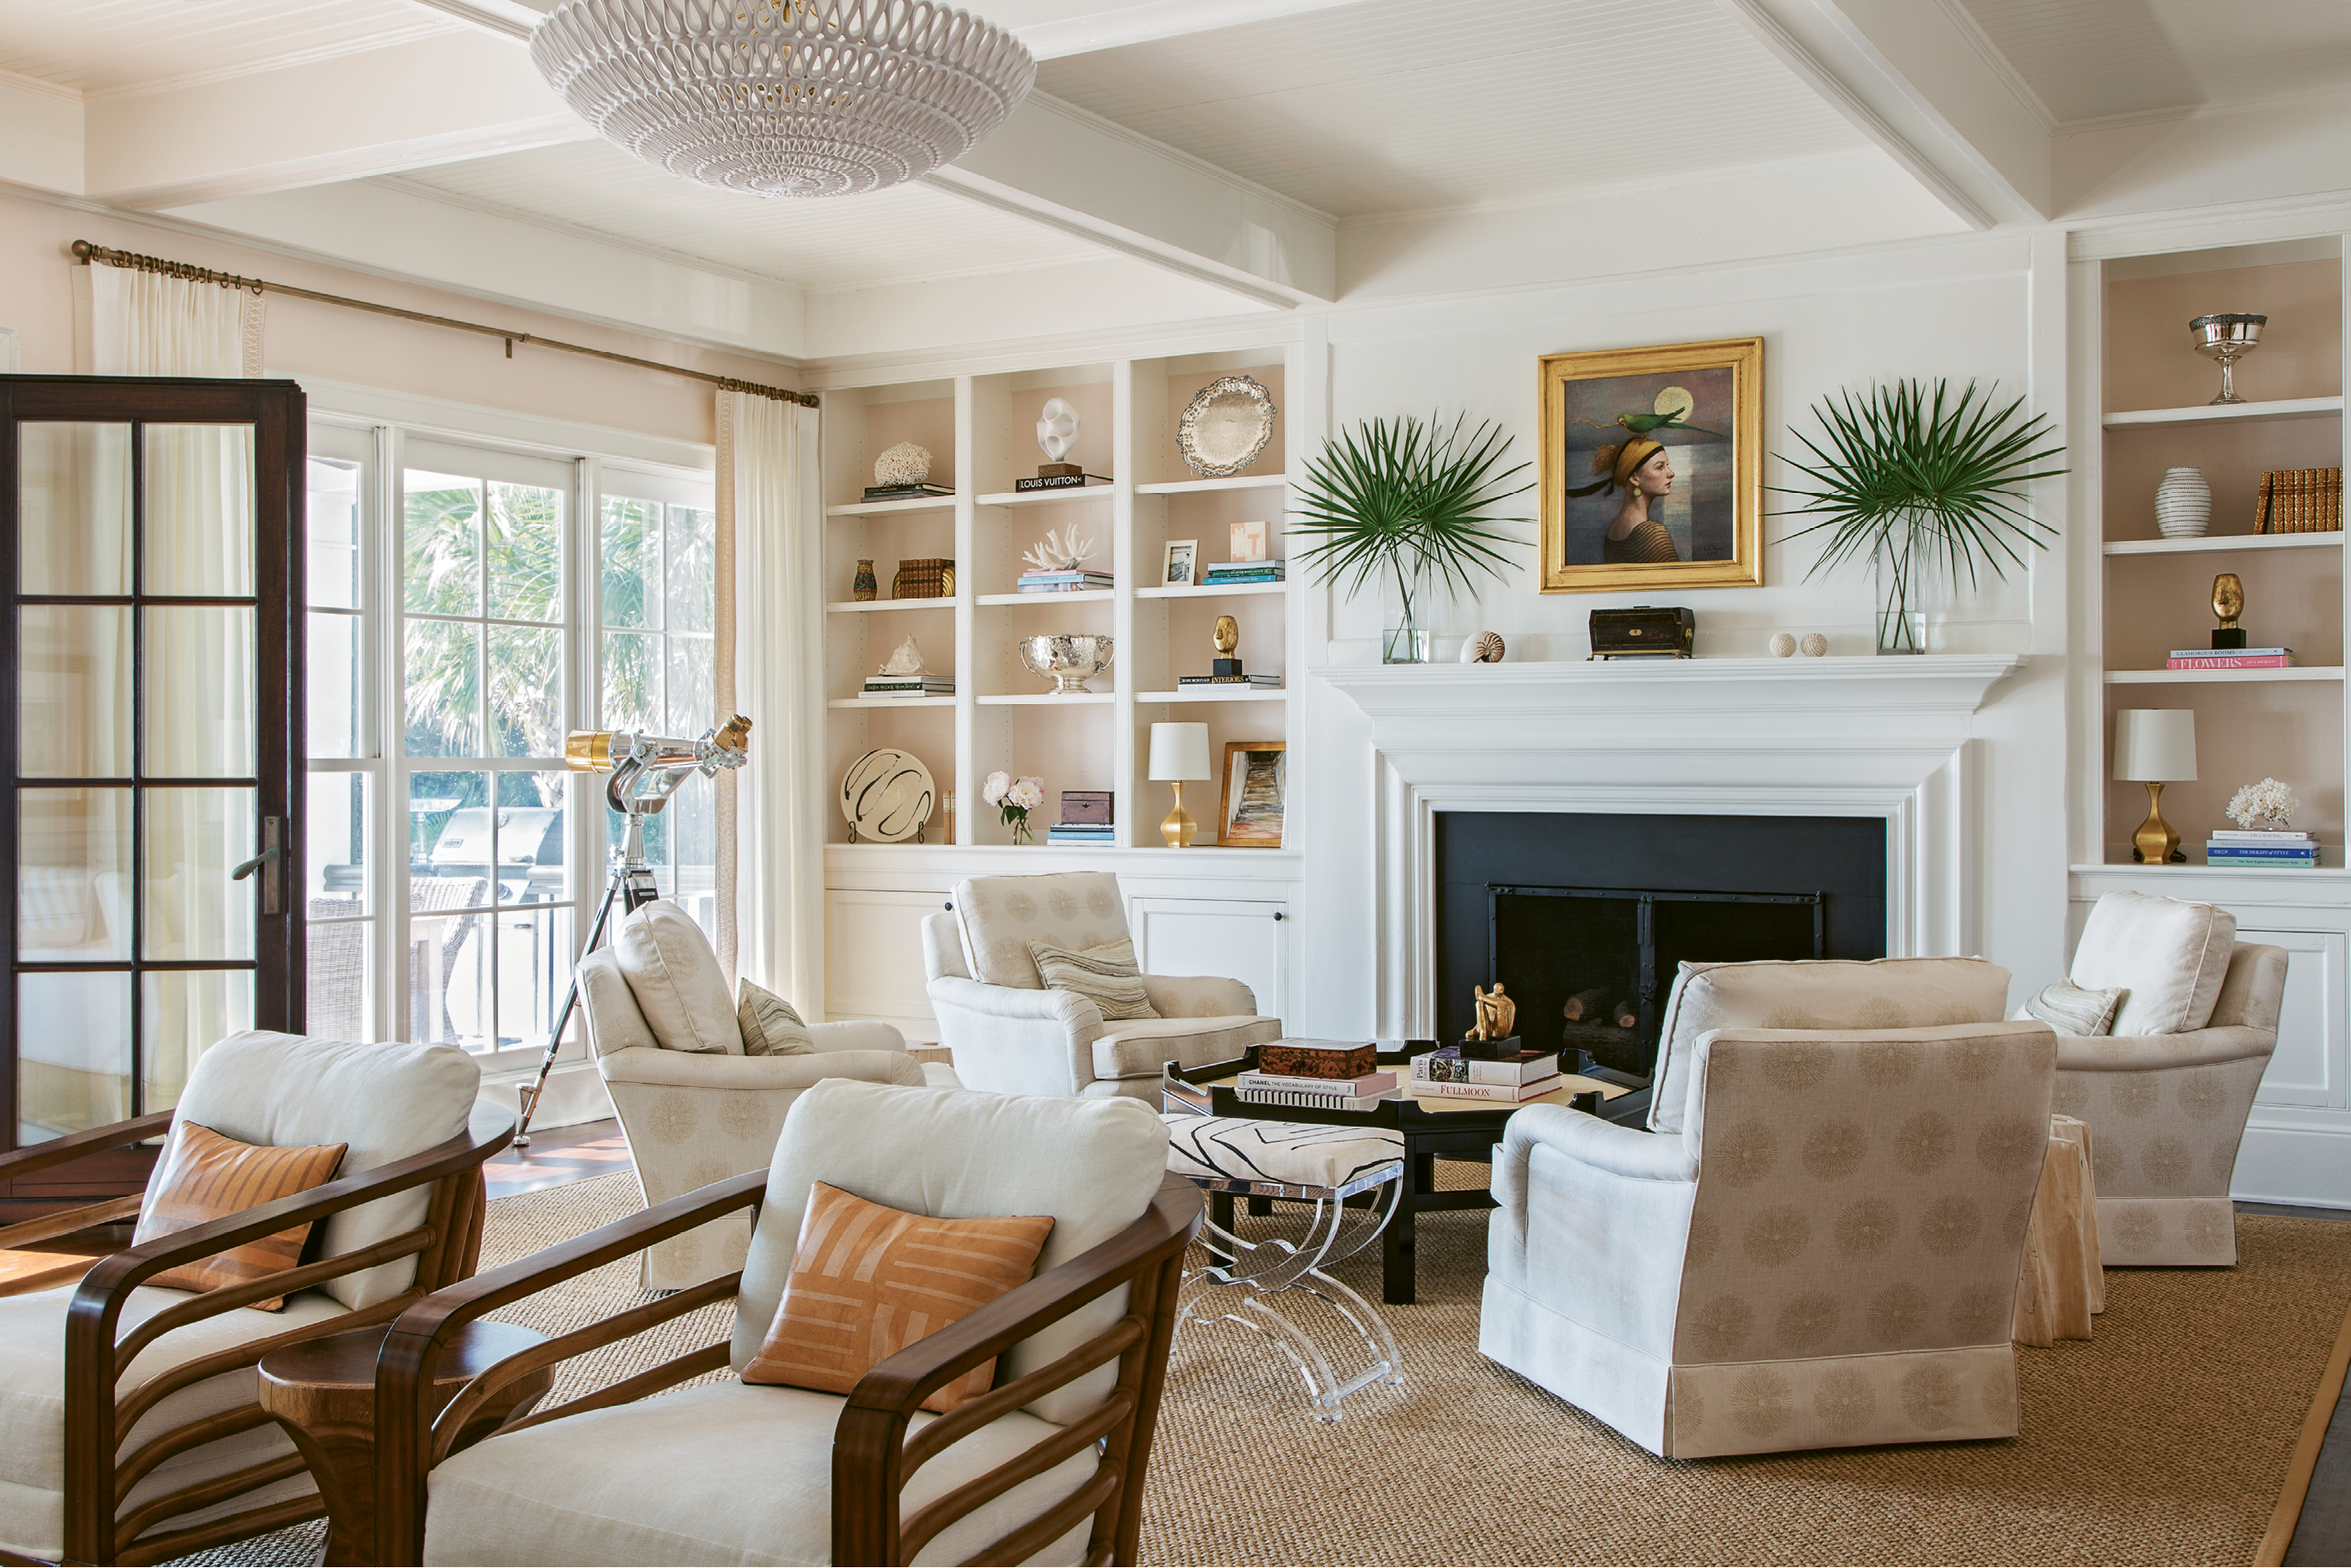 "COASTAL CHARM: The Kings asked designer Allison Elebash to infuse the home with a laid-back island vibe. For the living room, she chose a color palette inspired by coastal landscapes—the walls, for example, are Benjamin Moore's ""Beautiful in My Eyes,"" a rosy hue inspired by the pink sand beaches of the Caribbean."